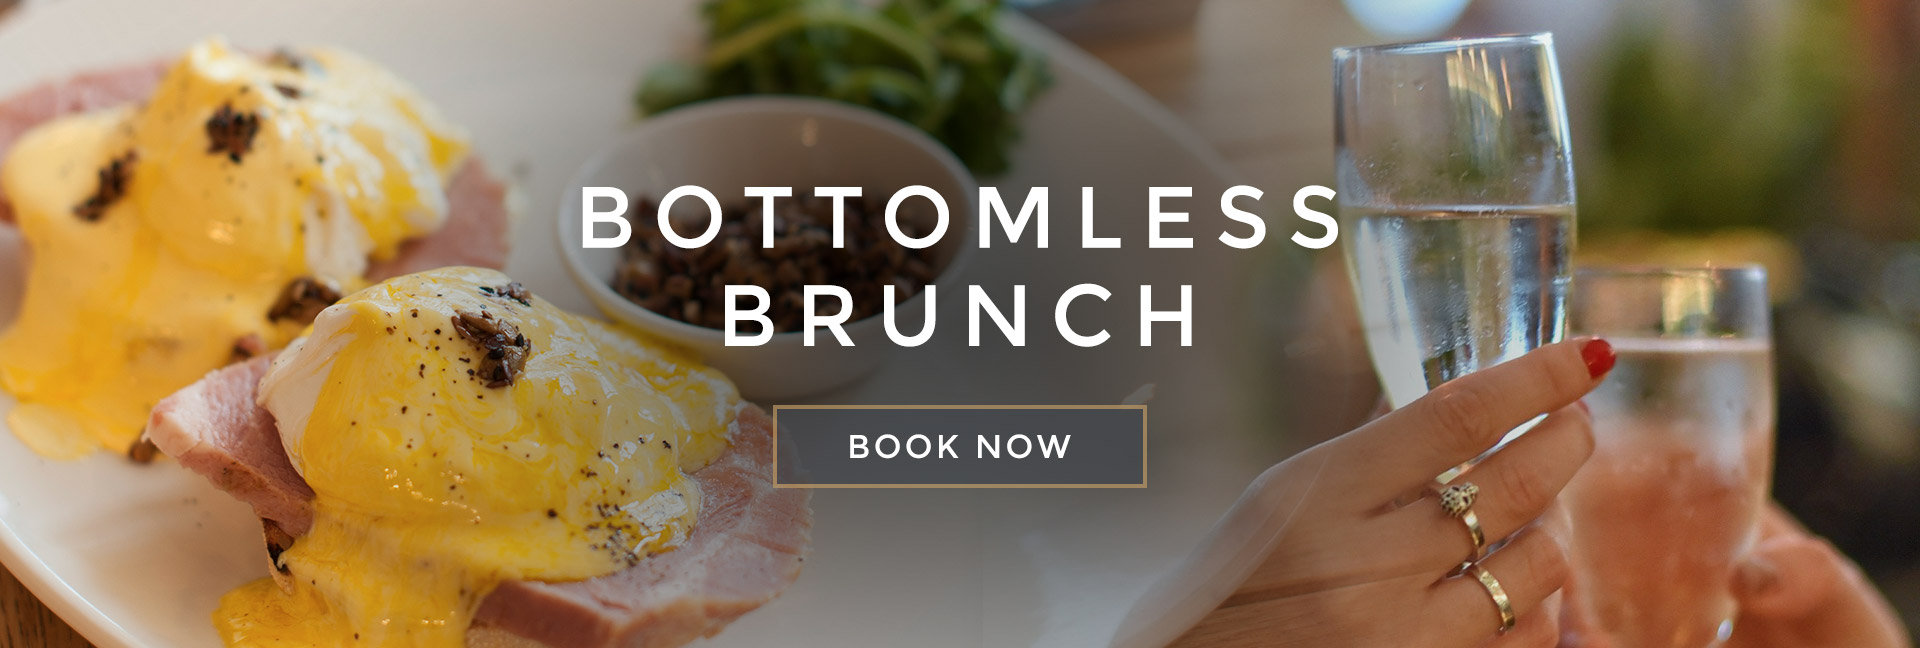 Bottomless Brunch at All Bar One Covent Garden - Book now